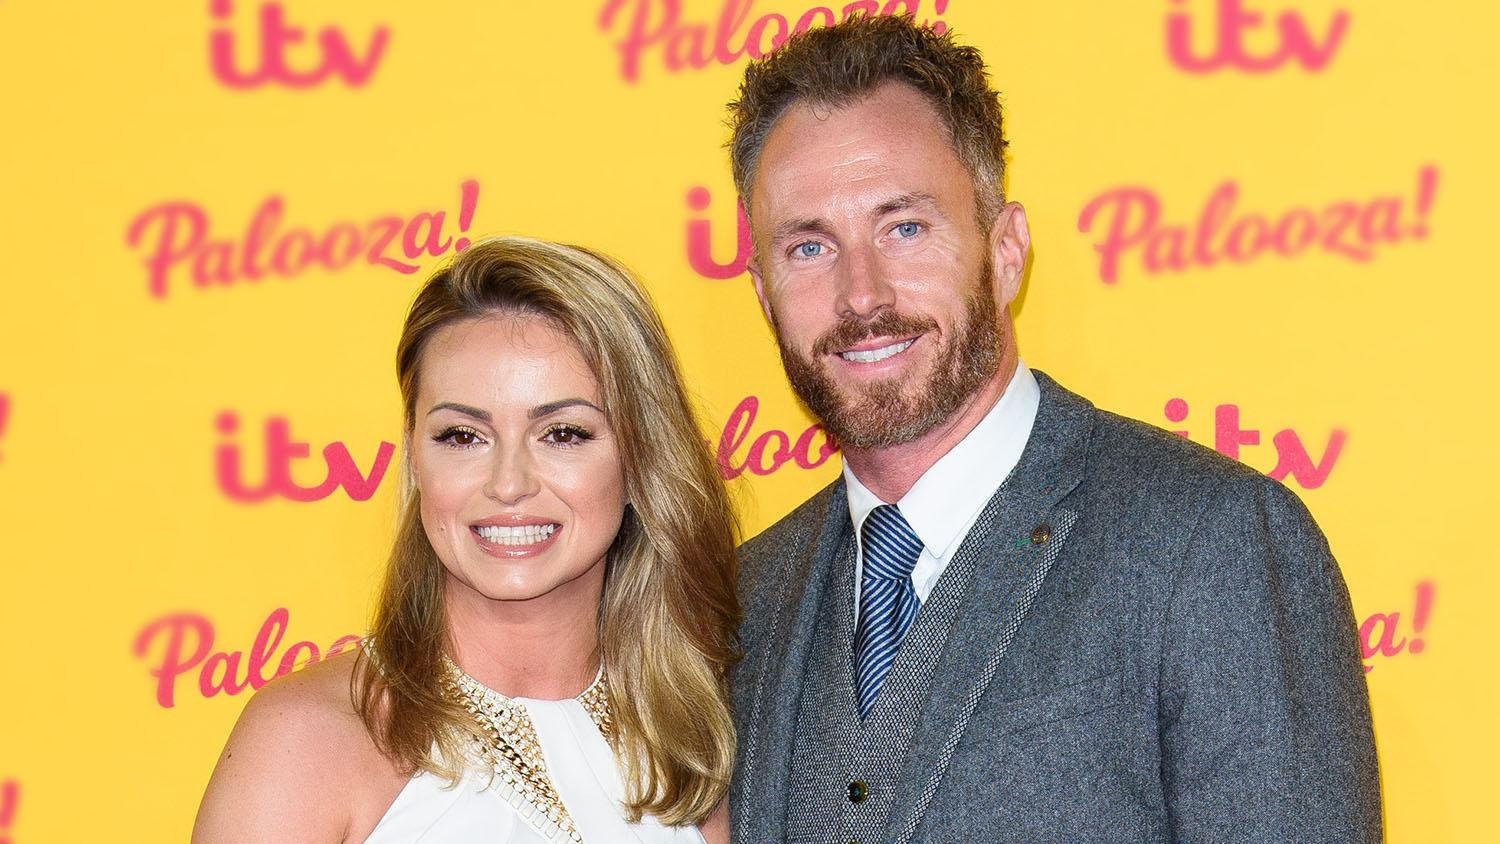 Ola and James Jordan open up about fertility struggles and IVF after announcing pregnancy